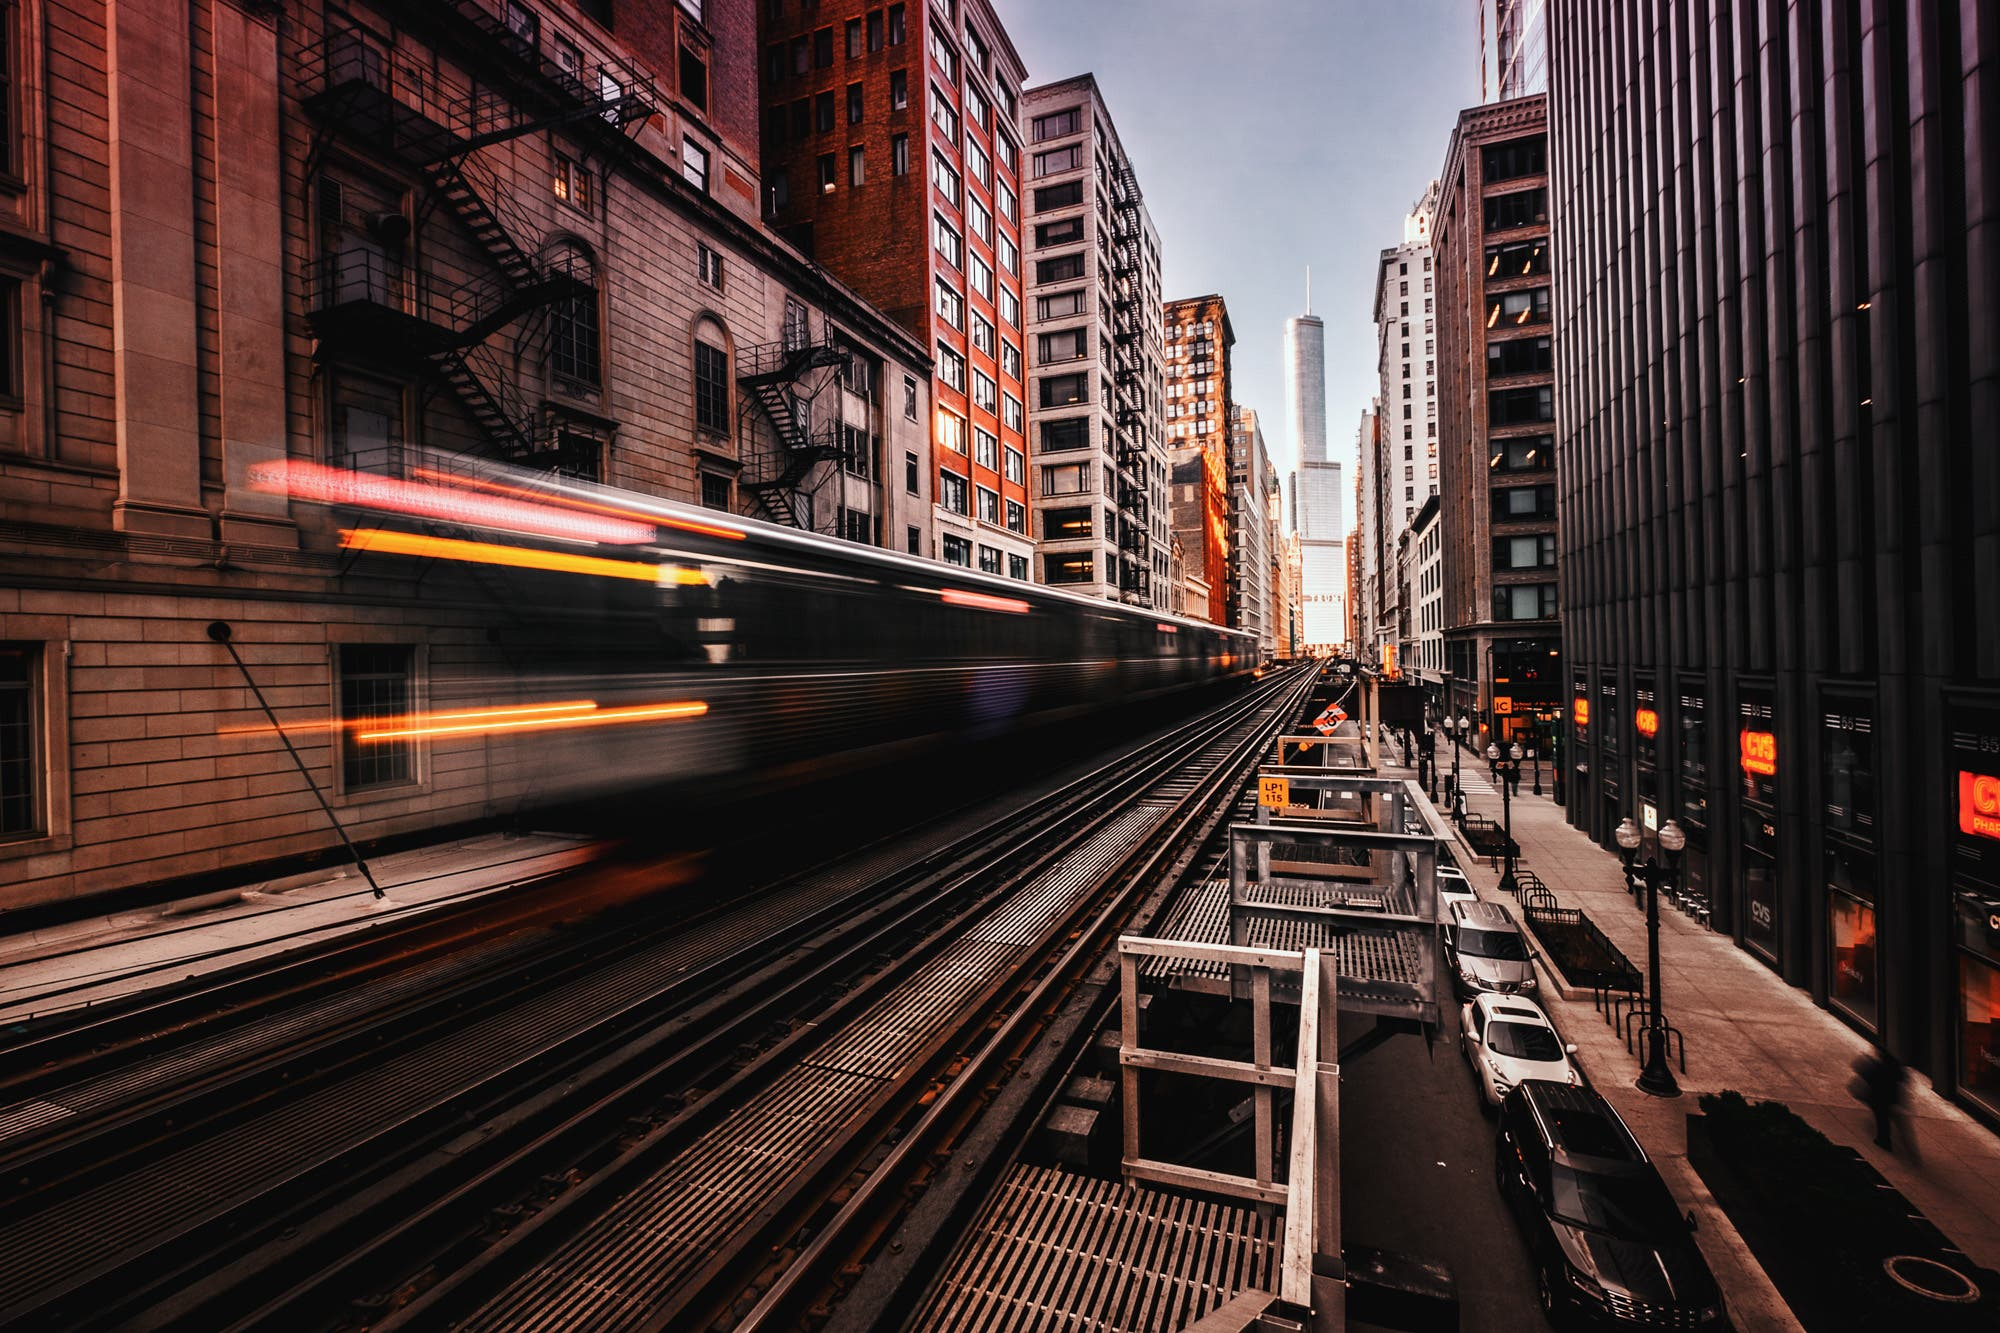 Cityscape Photography: Composition, Gear And The Application